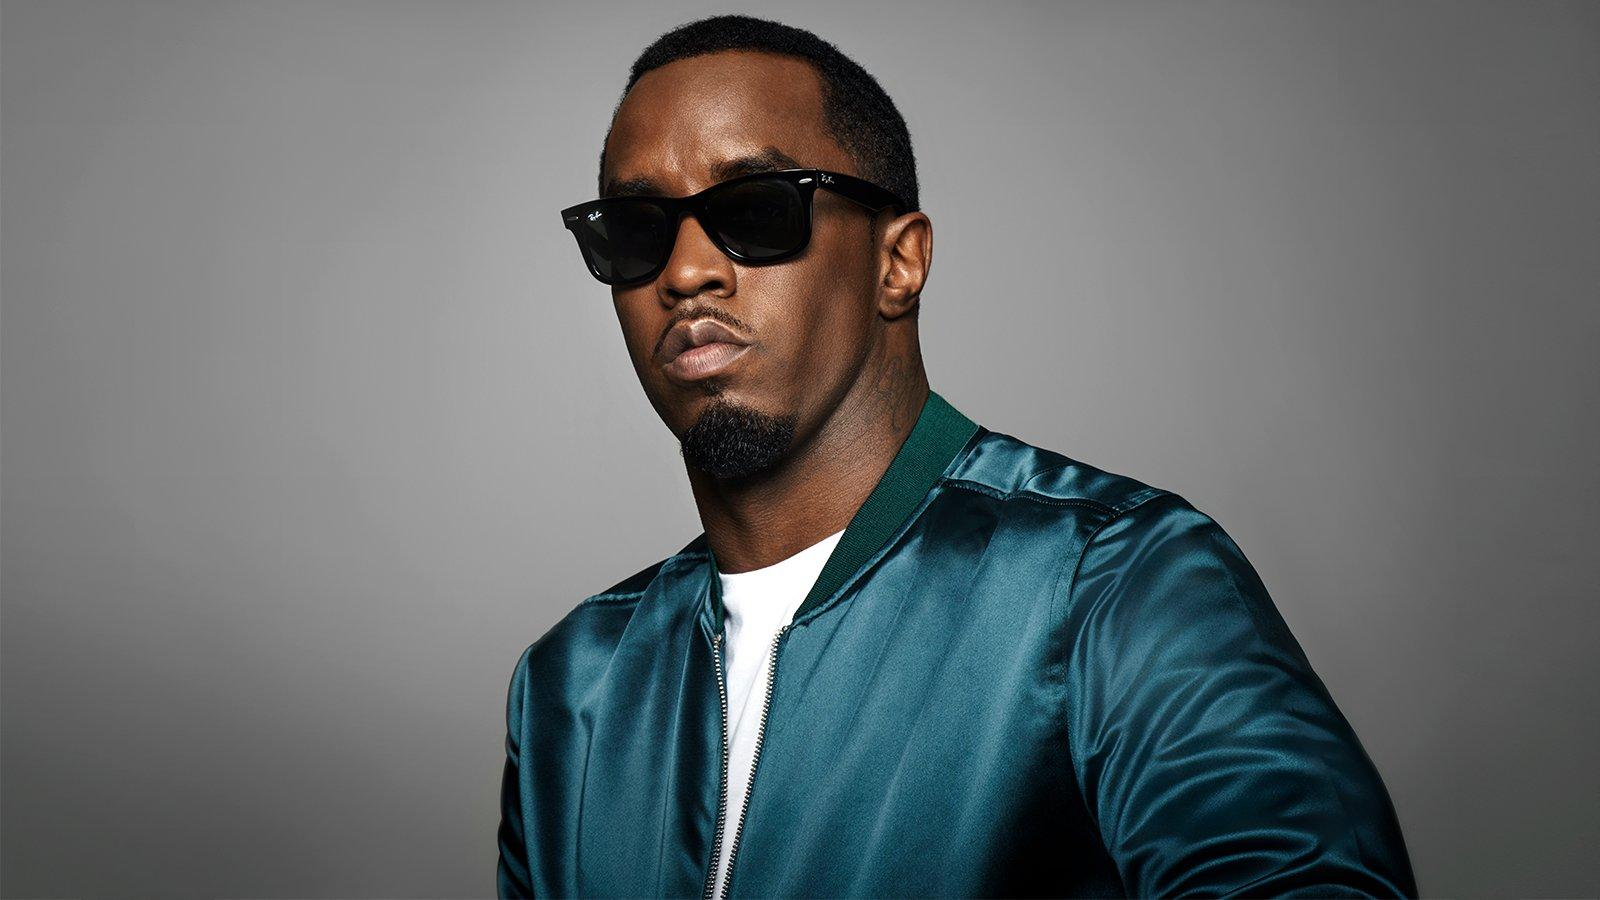 Diddy's Ex-GF Accuses Him Of Mental, Emotional, And Physical Abuse: She Says She's Been Forced To Have Two Abortions - Watch The Shocking Videos